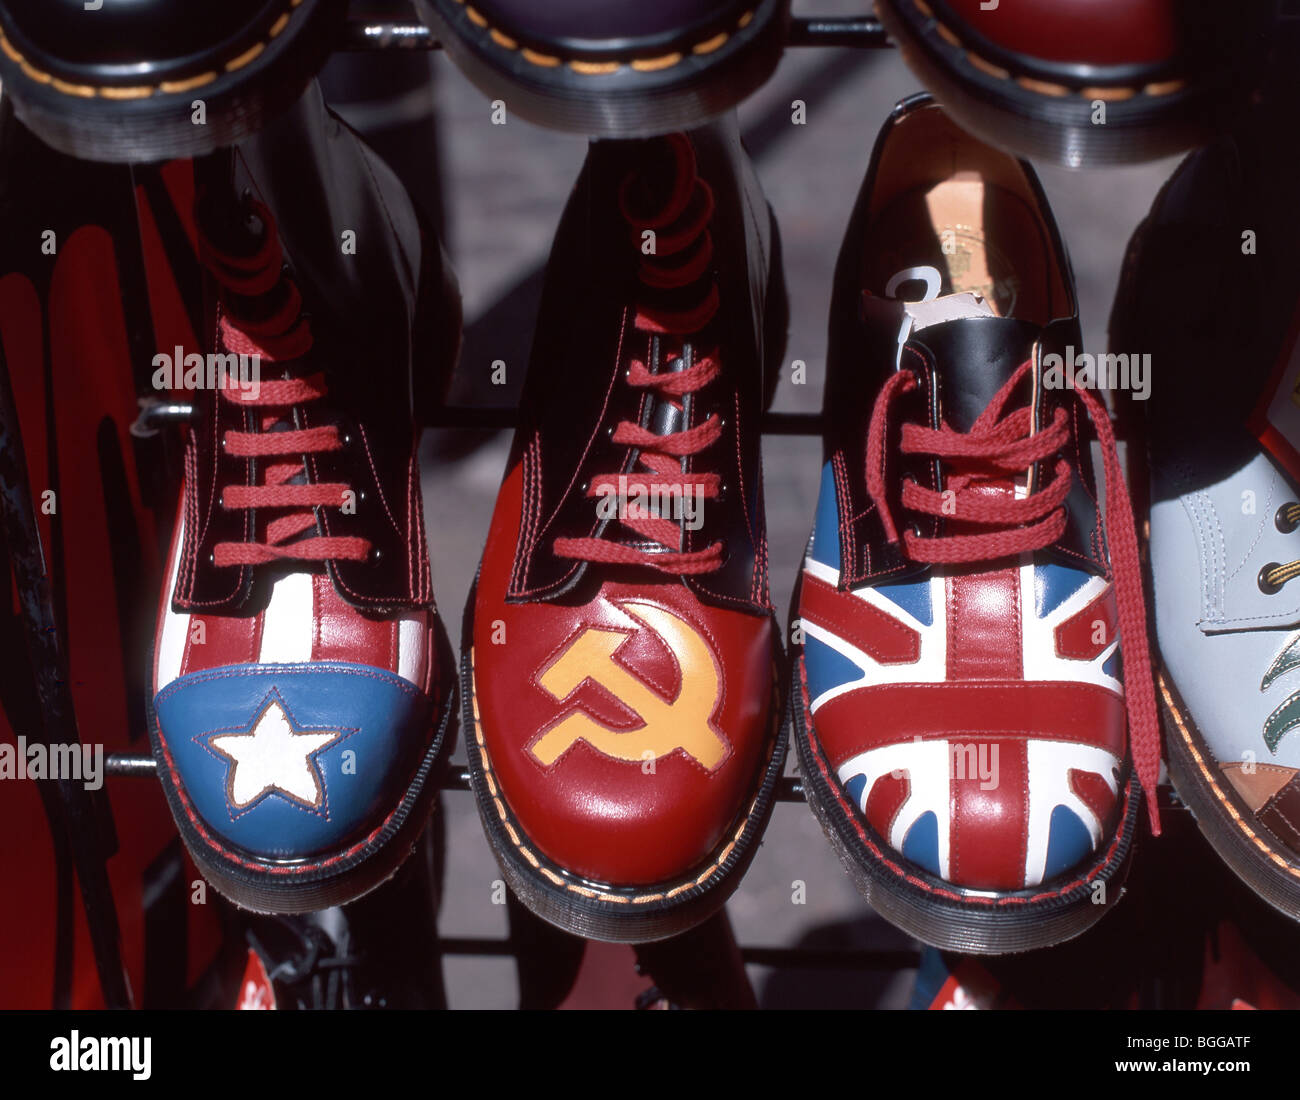 Dr Martens boots with flags, Carnaby Street, Soho District, London, England, United Kingdom - Stock Image